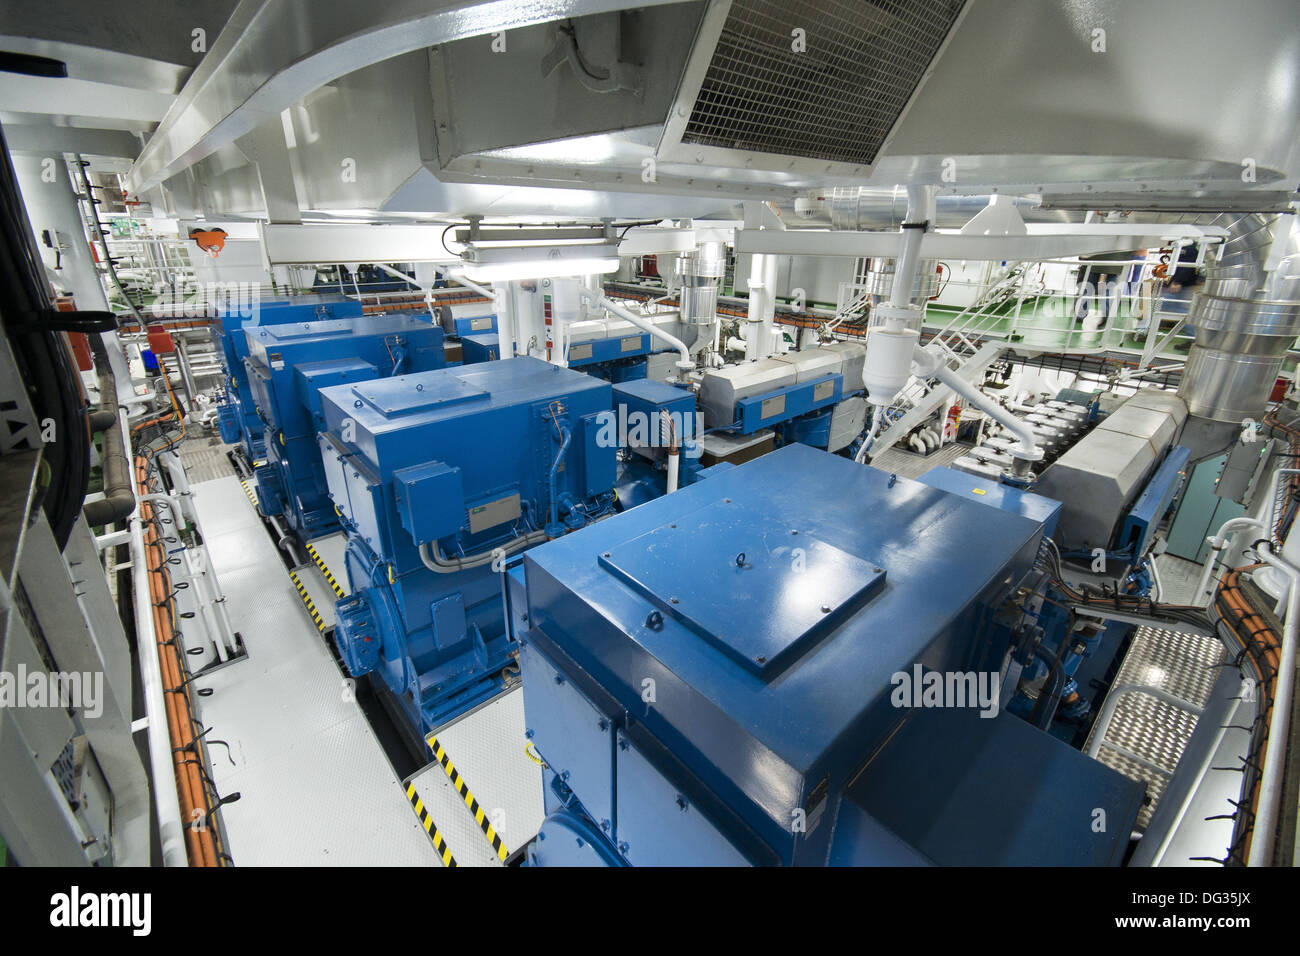 The engine room of the RRS Discovery research ship vessel Southampton, Hampshire, England, UK - Stock Image